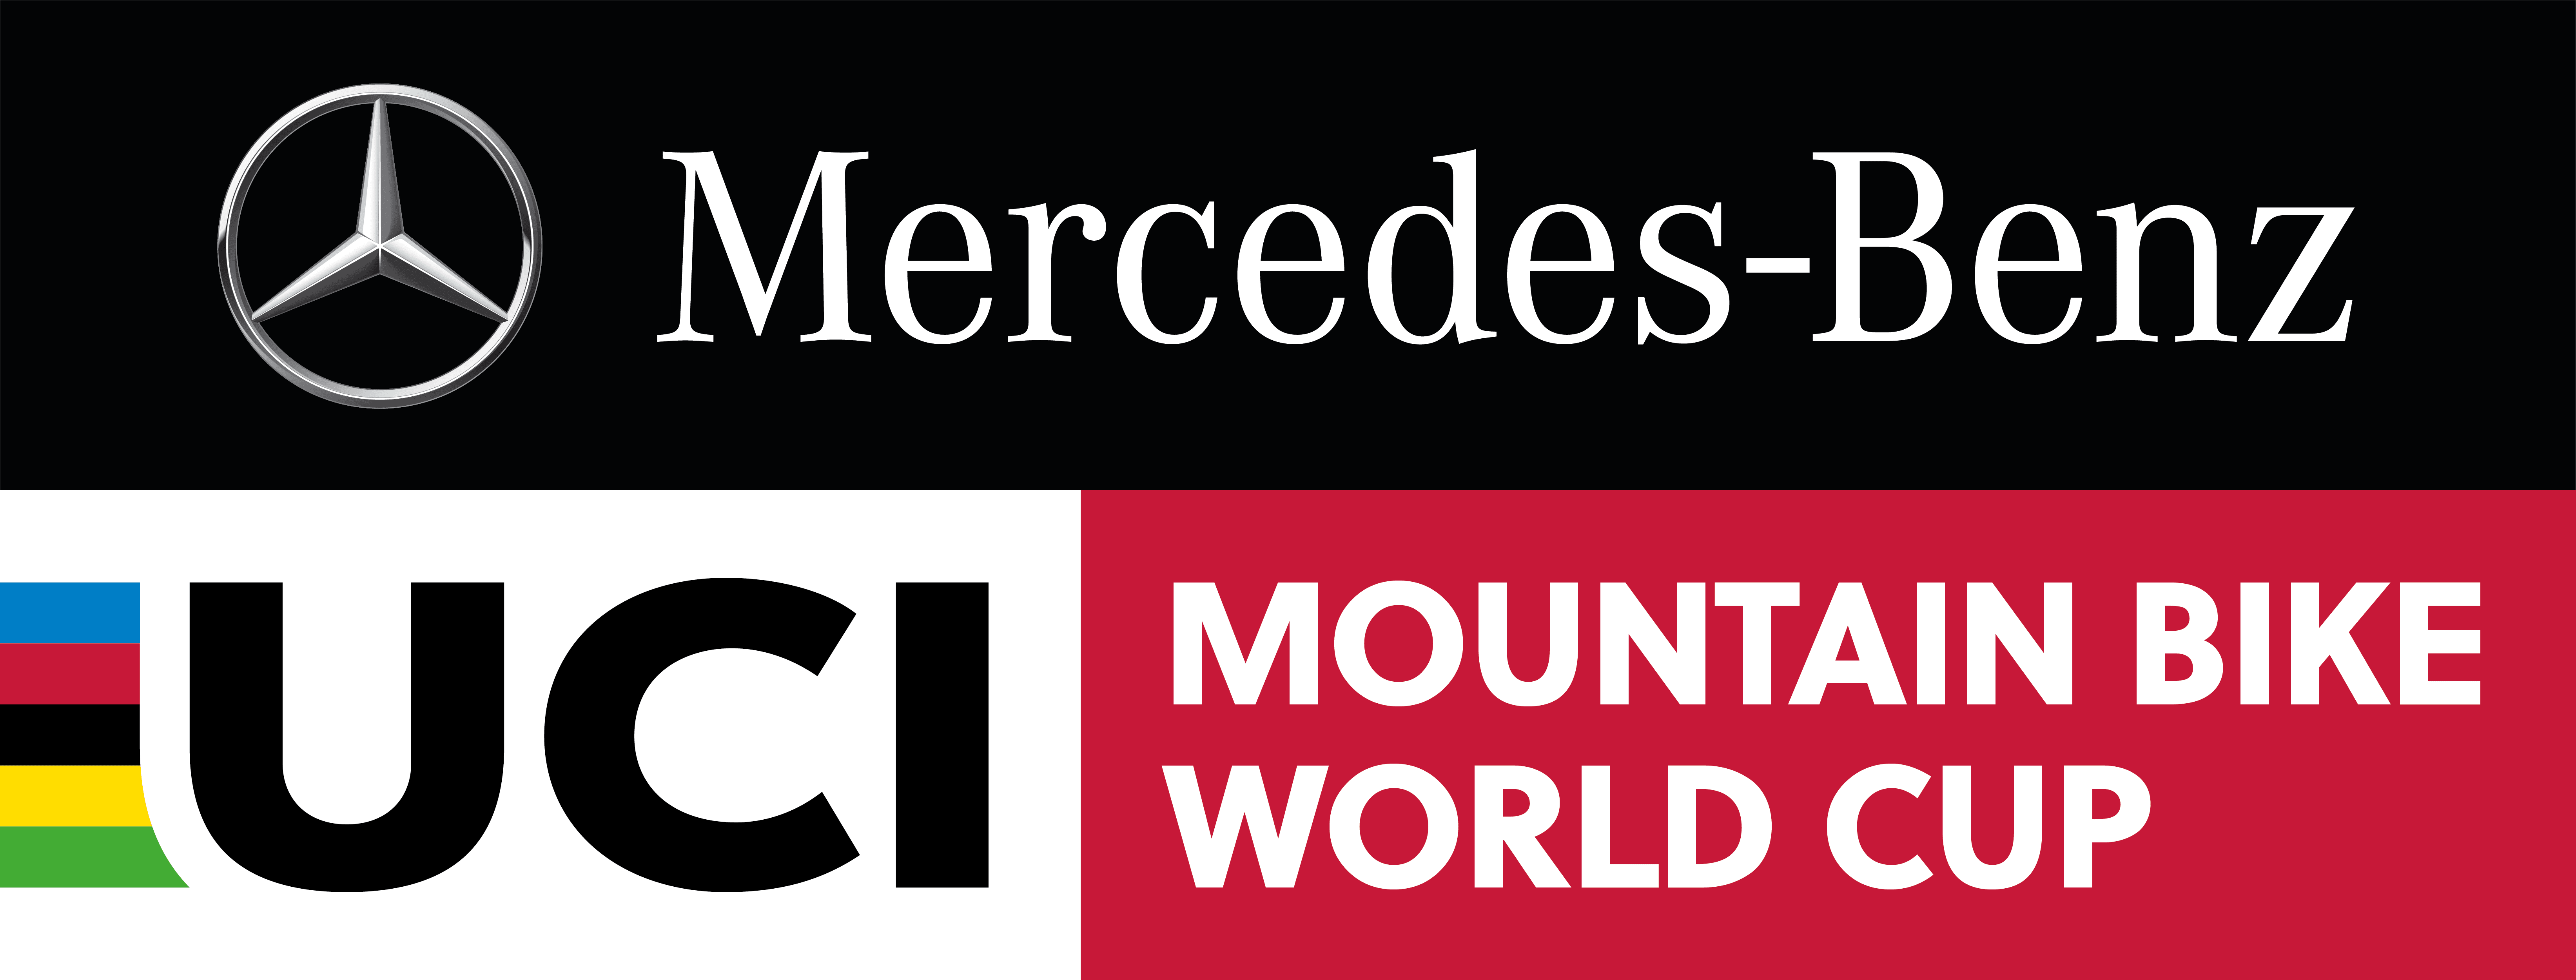 The logo for the Mercedes-Benz UCI Mountain Bike World Cup.